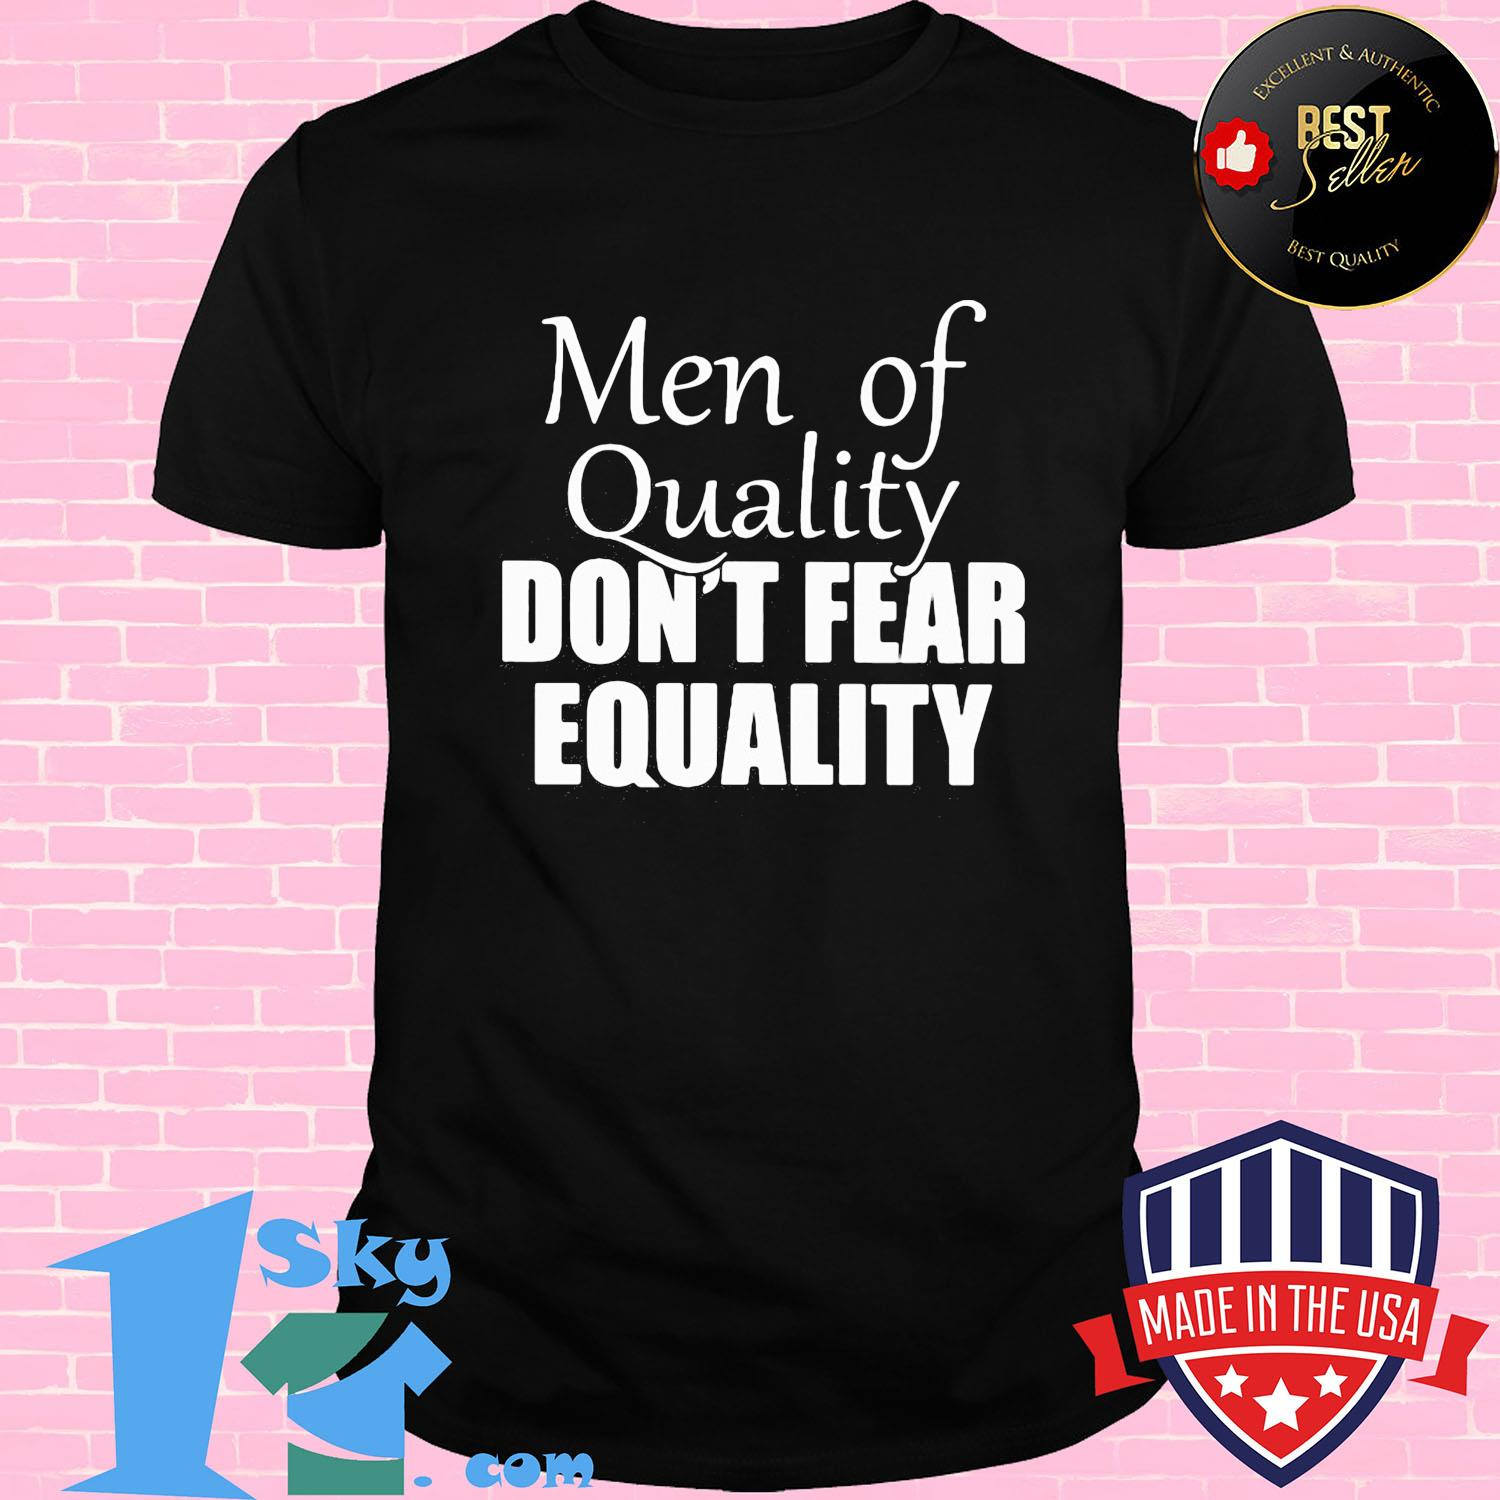 5280e3c4 men of quality don t fear equality shirt unisex shirt - Shop trending - We offer all trend shirts - 1SkyTee